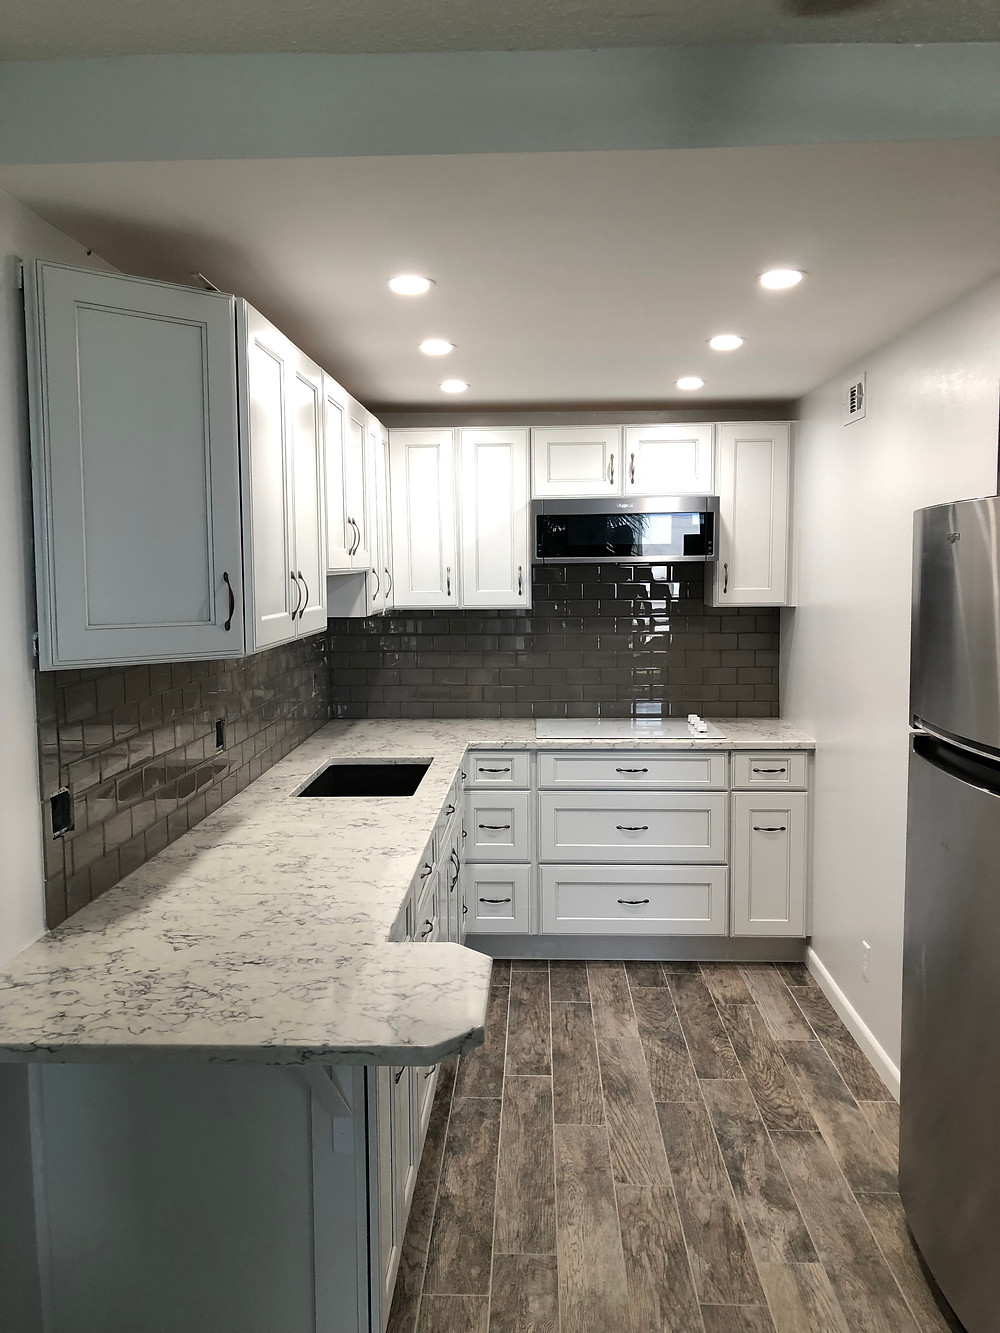 Quartz countertops installation and Backsplash installation in Boca Raton FL by Stone and Quartz LLC